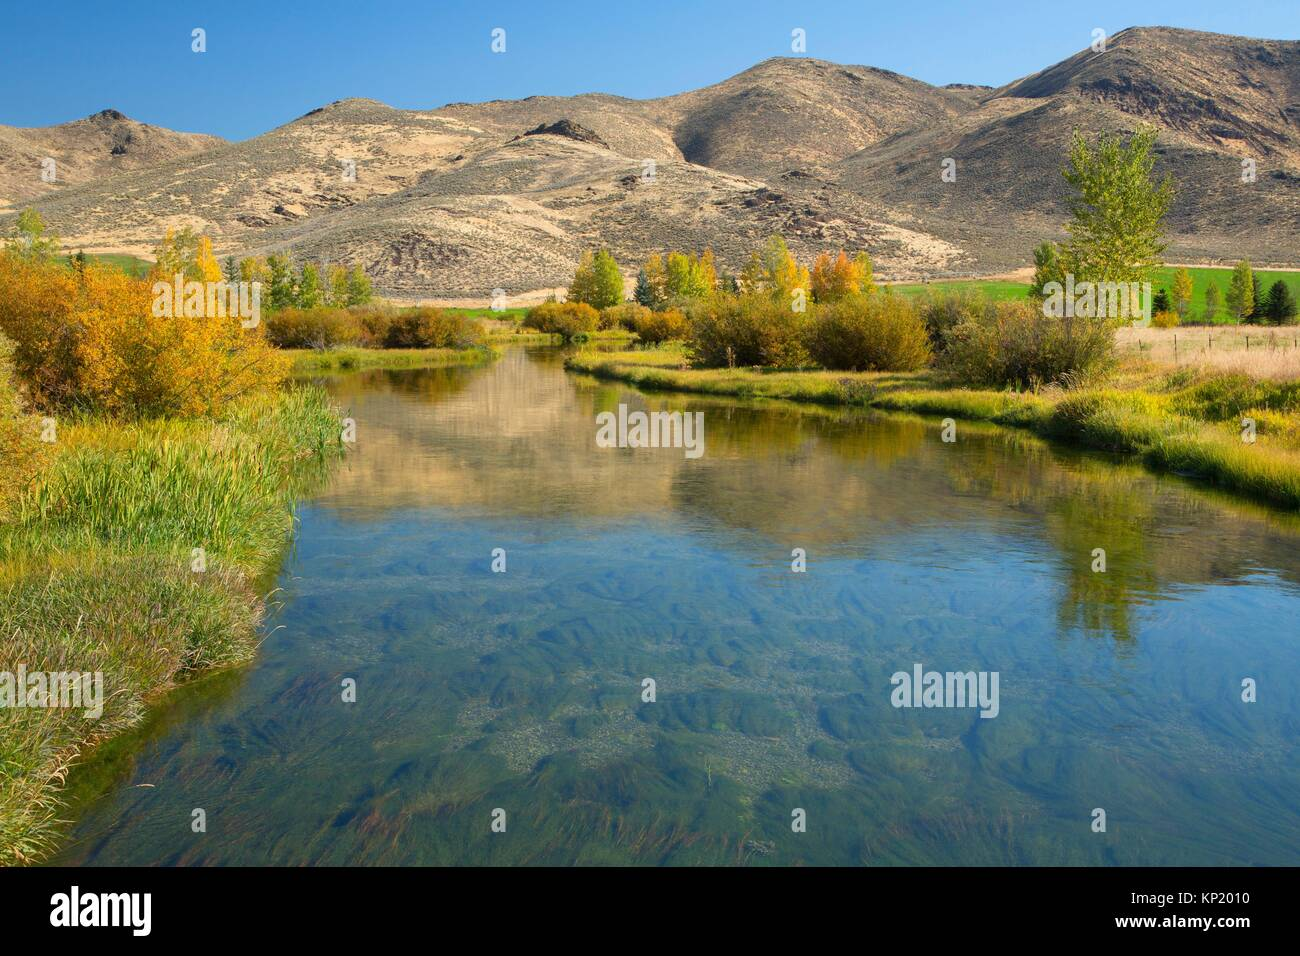 Silver Creek, Silver Creek Sportsman Access Area, Idaho. - Stock Image